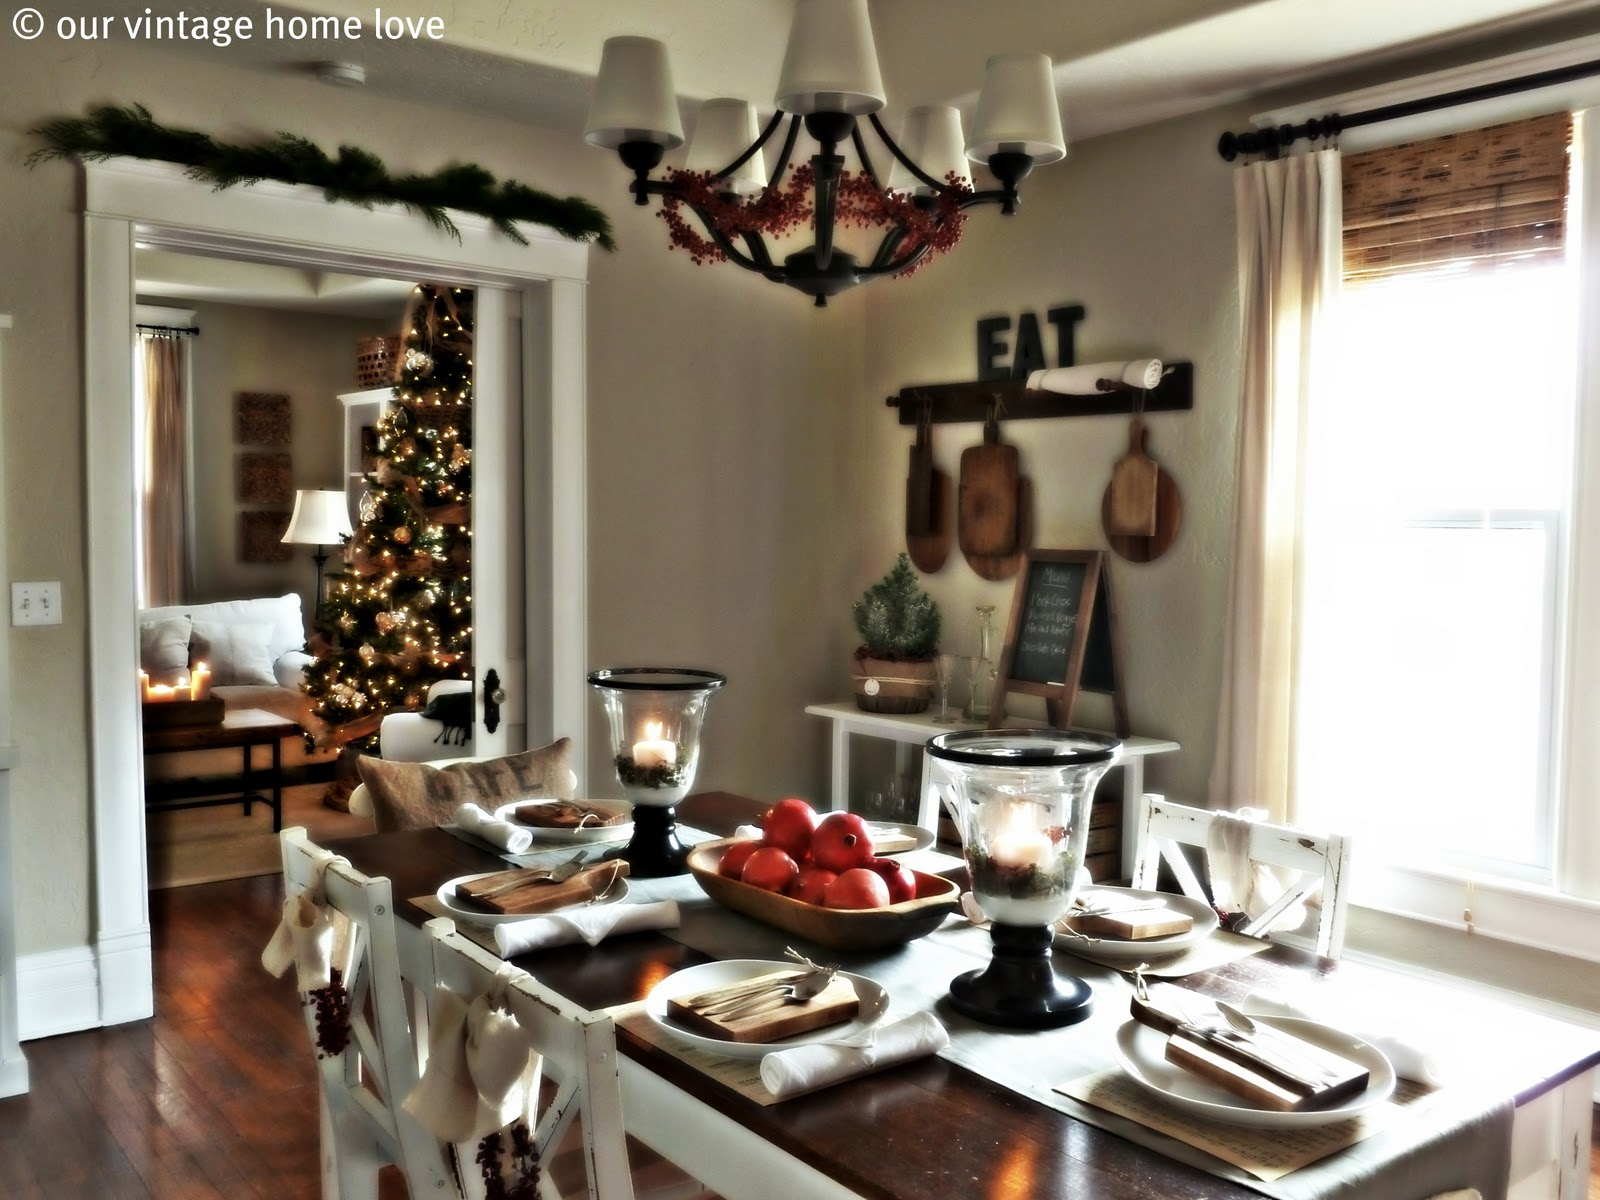 christmas table decor ideas - How To Decorate A Ranch Style Home For Christmas